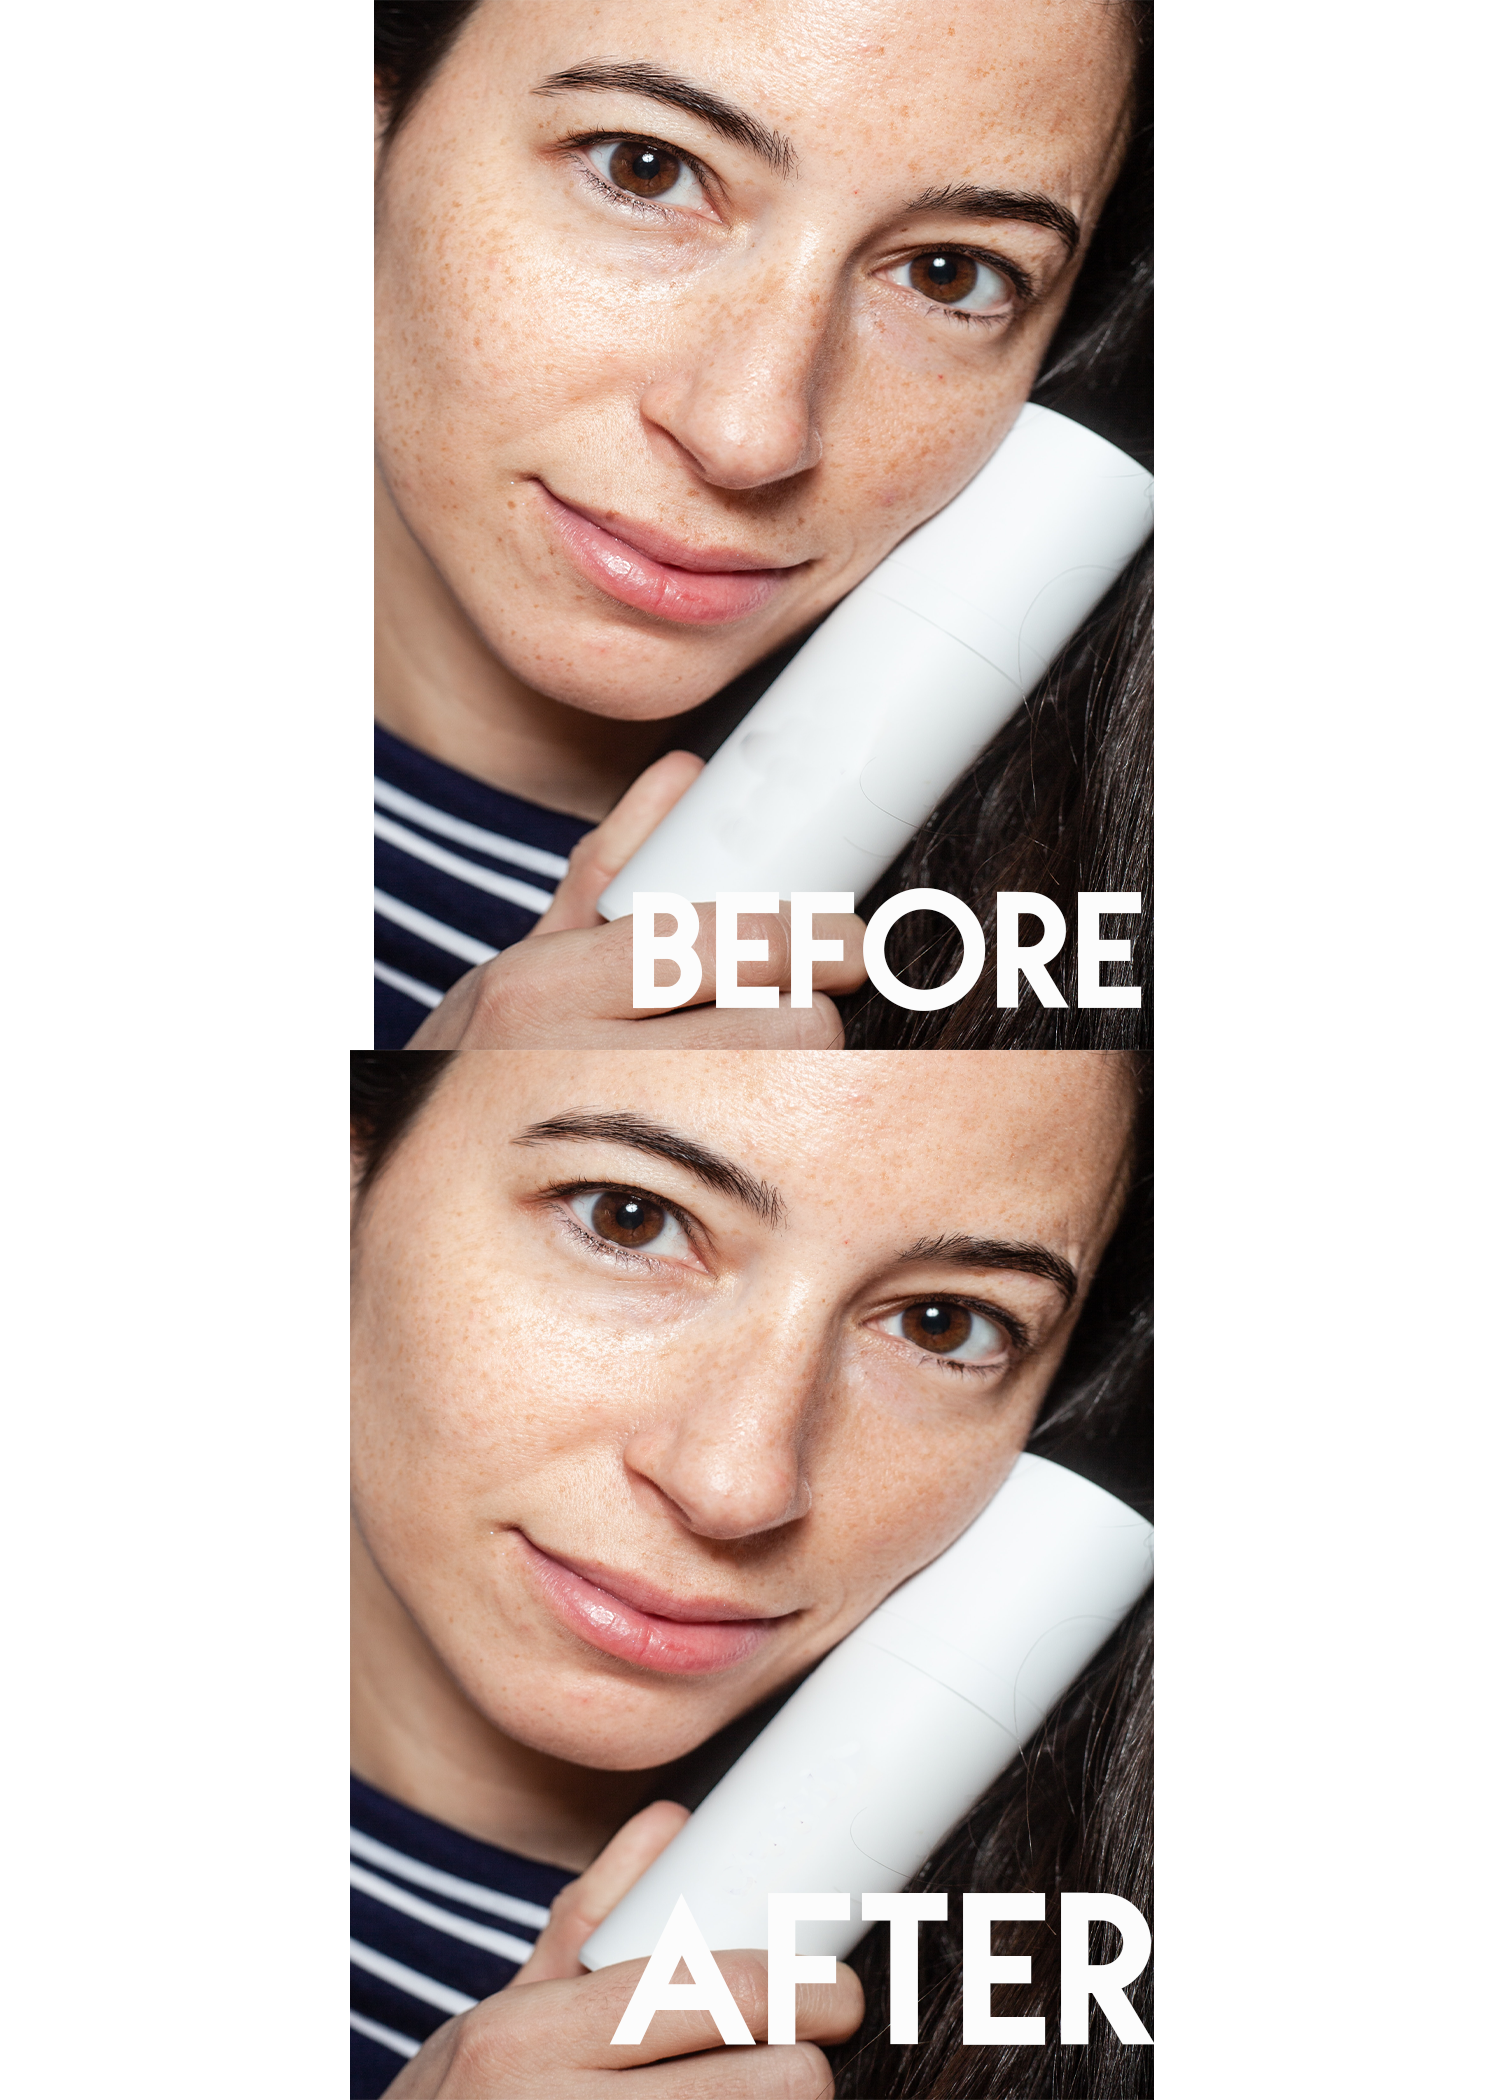 Skin Spots and Defects Gone Forever